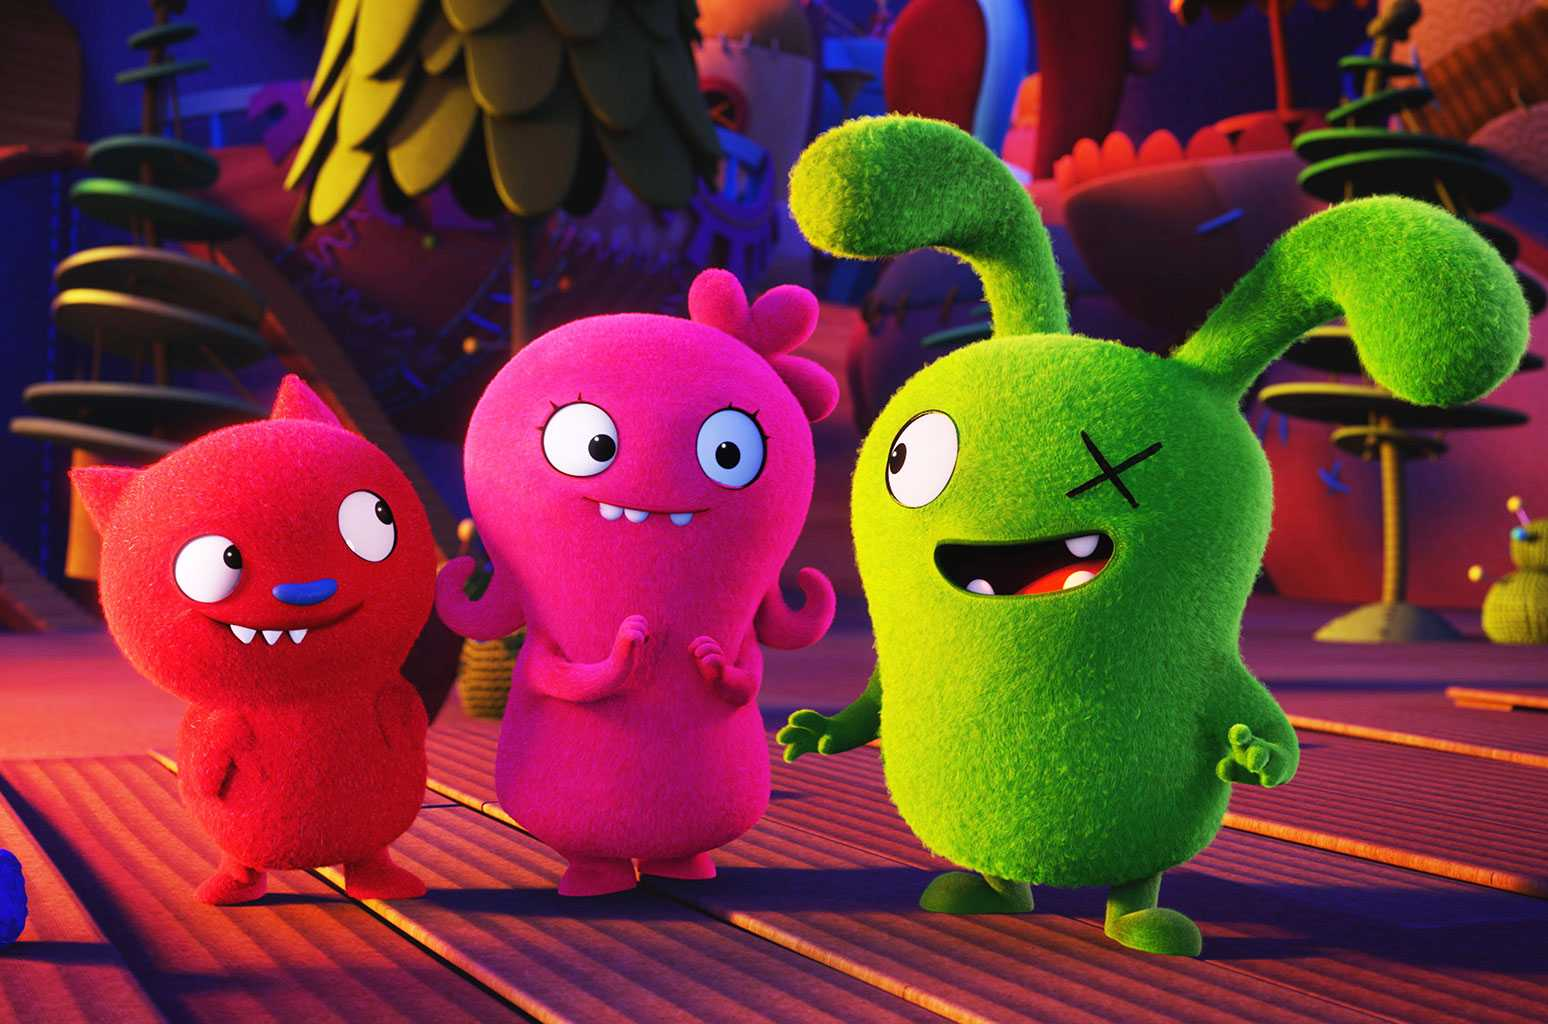 'UglyDolls' Composer Christopher Lennertz on Making a Modern-Day Pop Star Musical